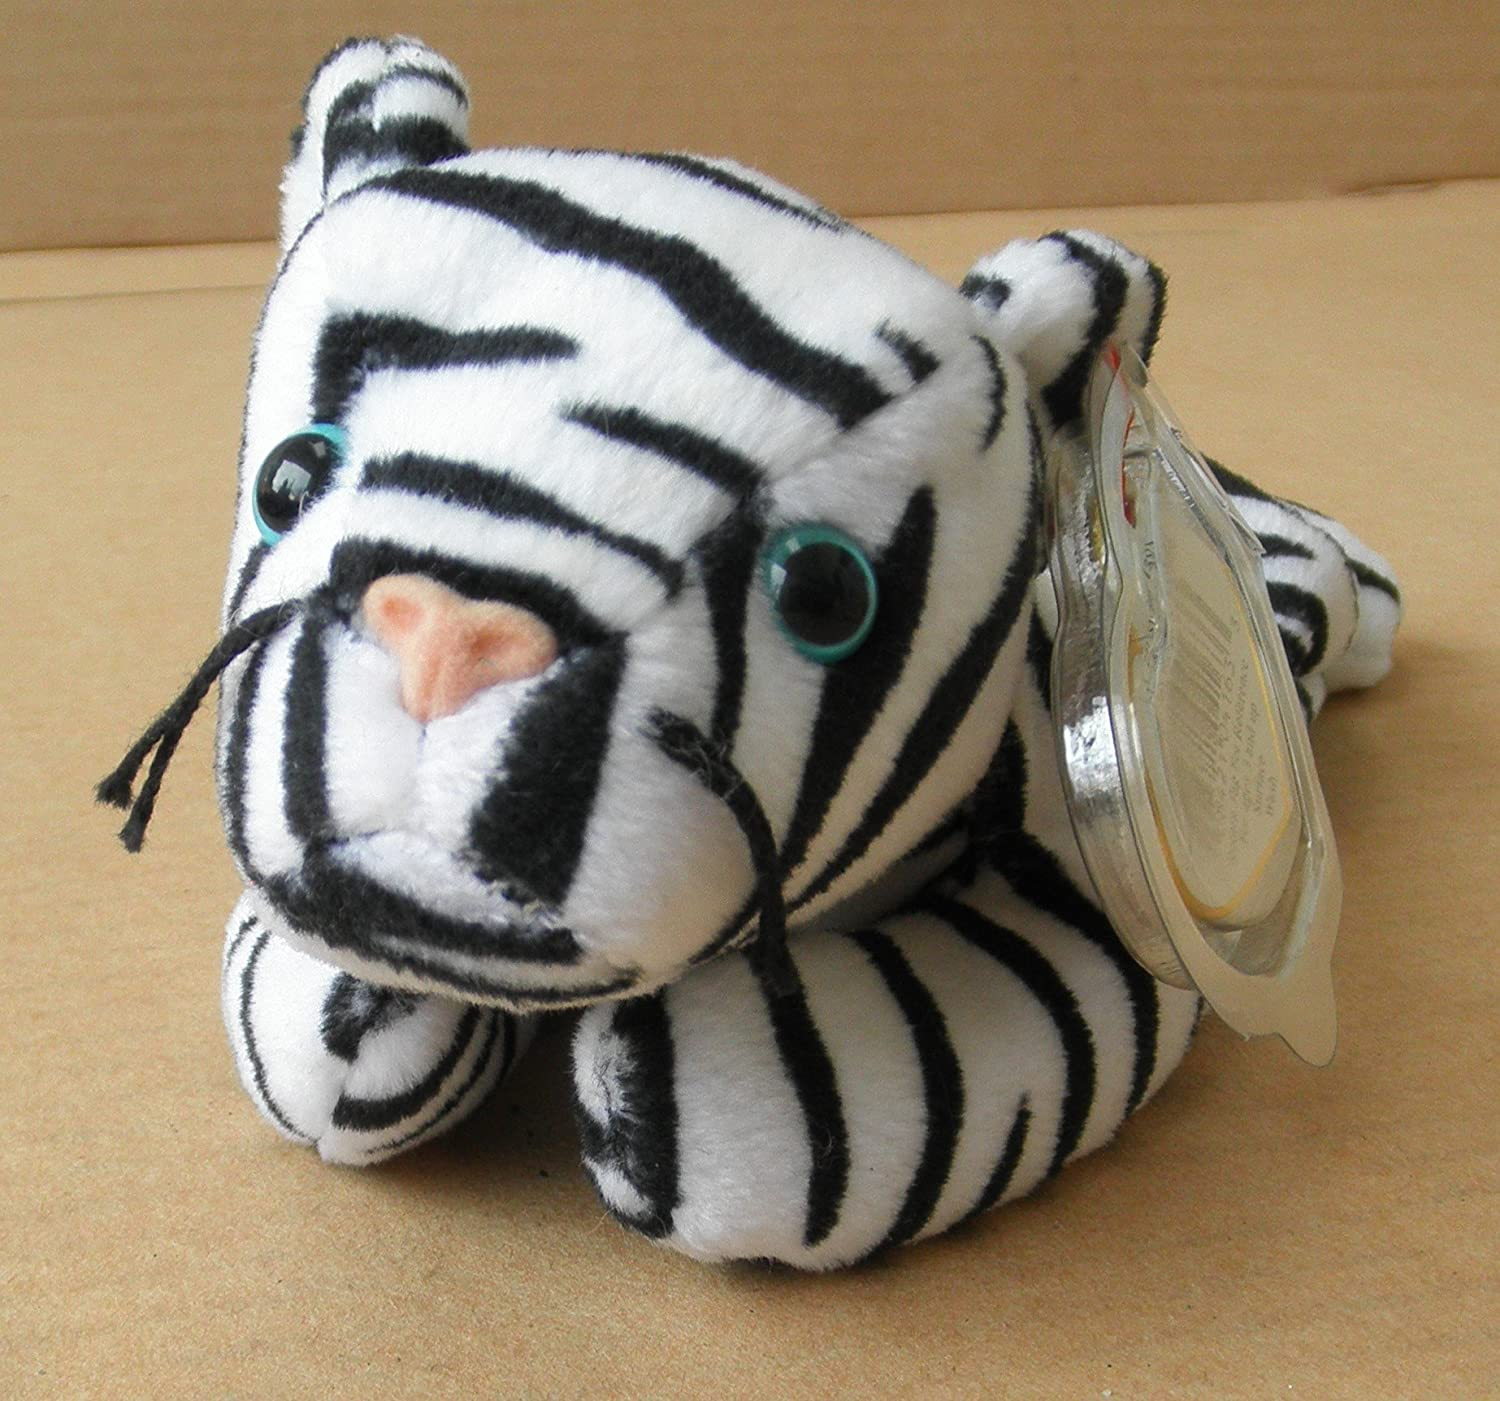 TY Beanie Babies Blizzard the White Tiger Stuffed Animal Plush Toy - 8 inches long - Black and White Stripes by Smartbuy